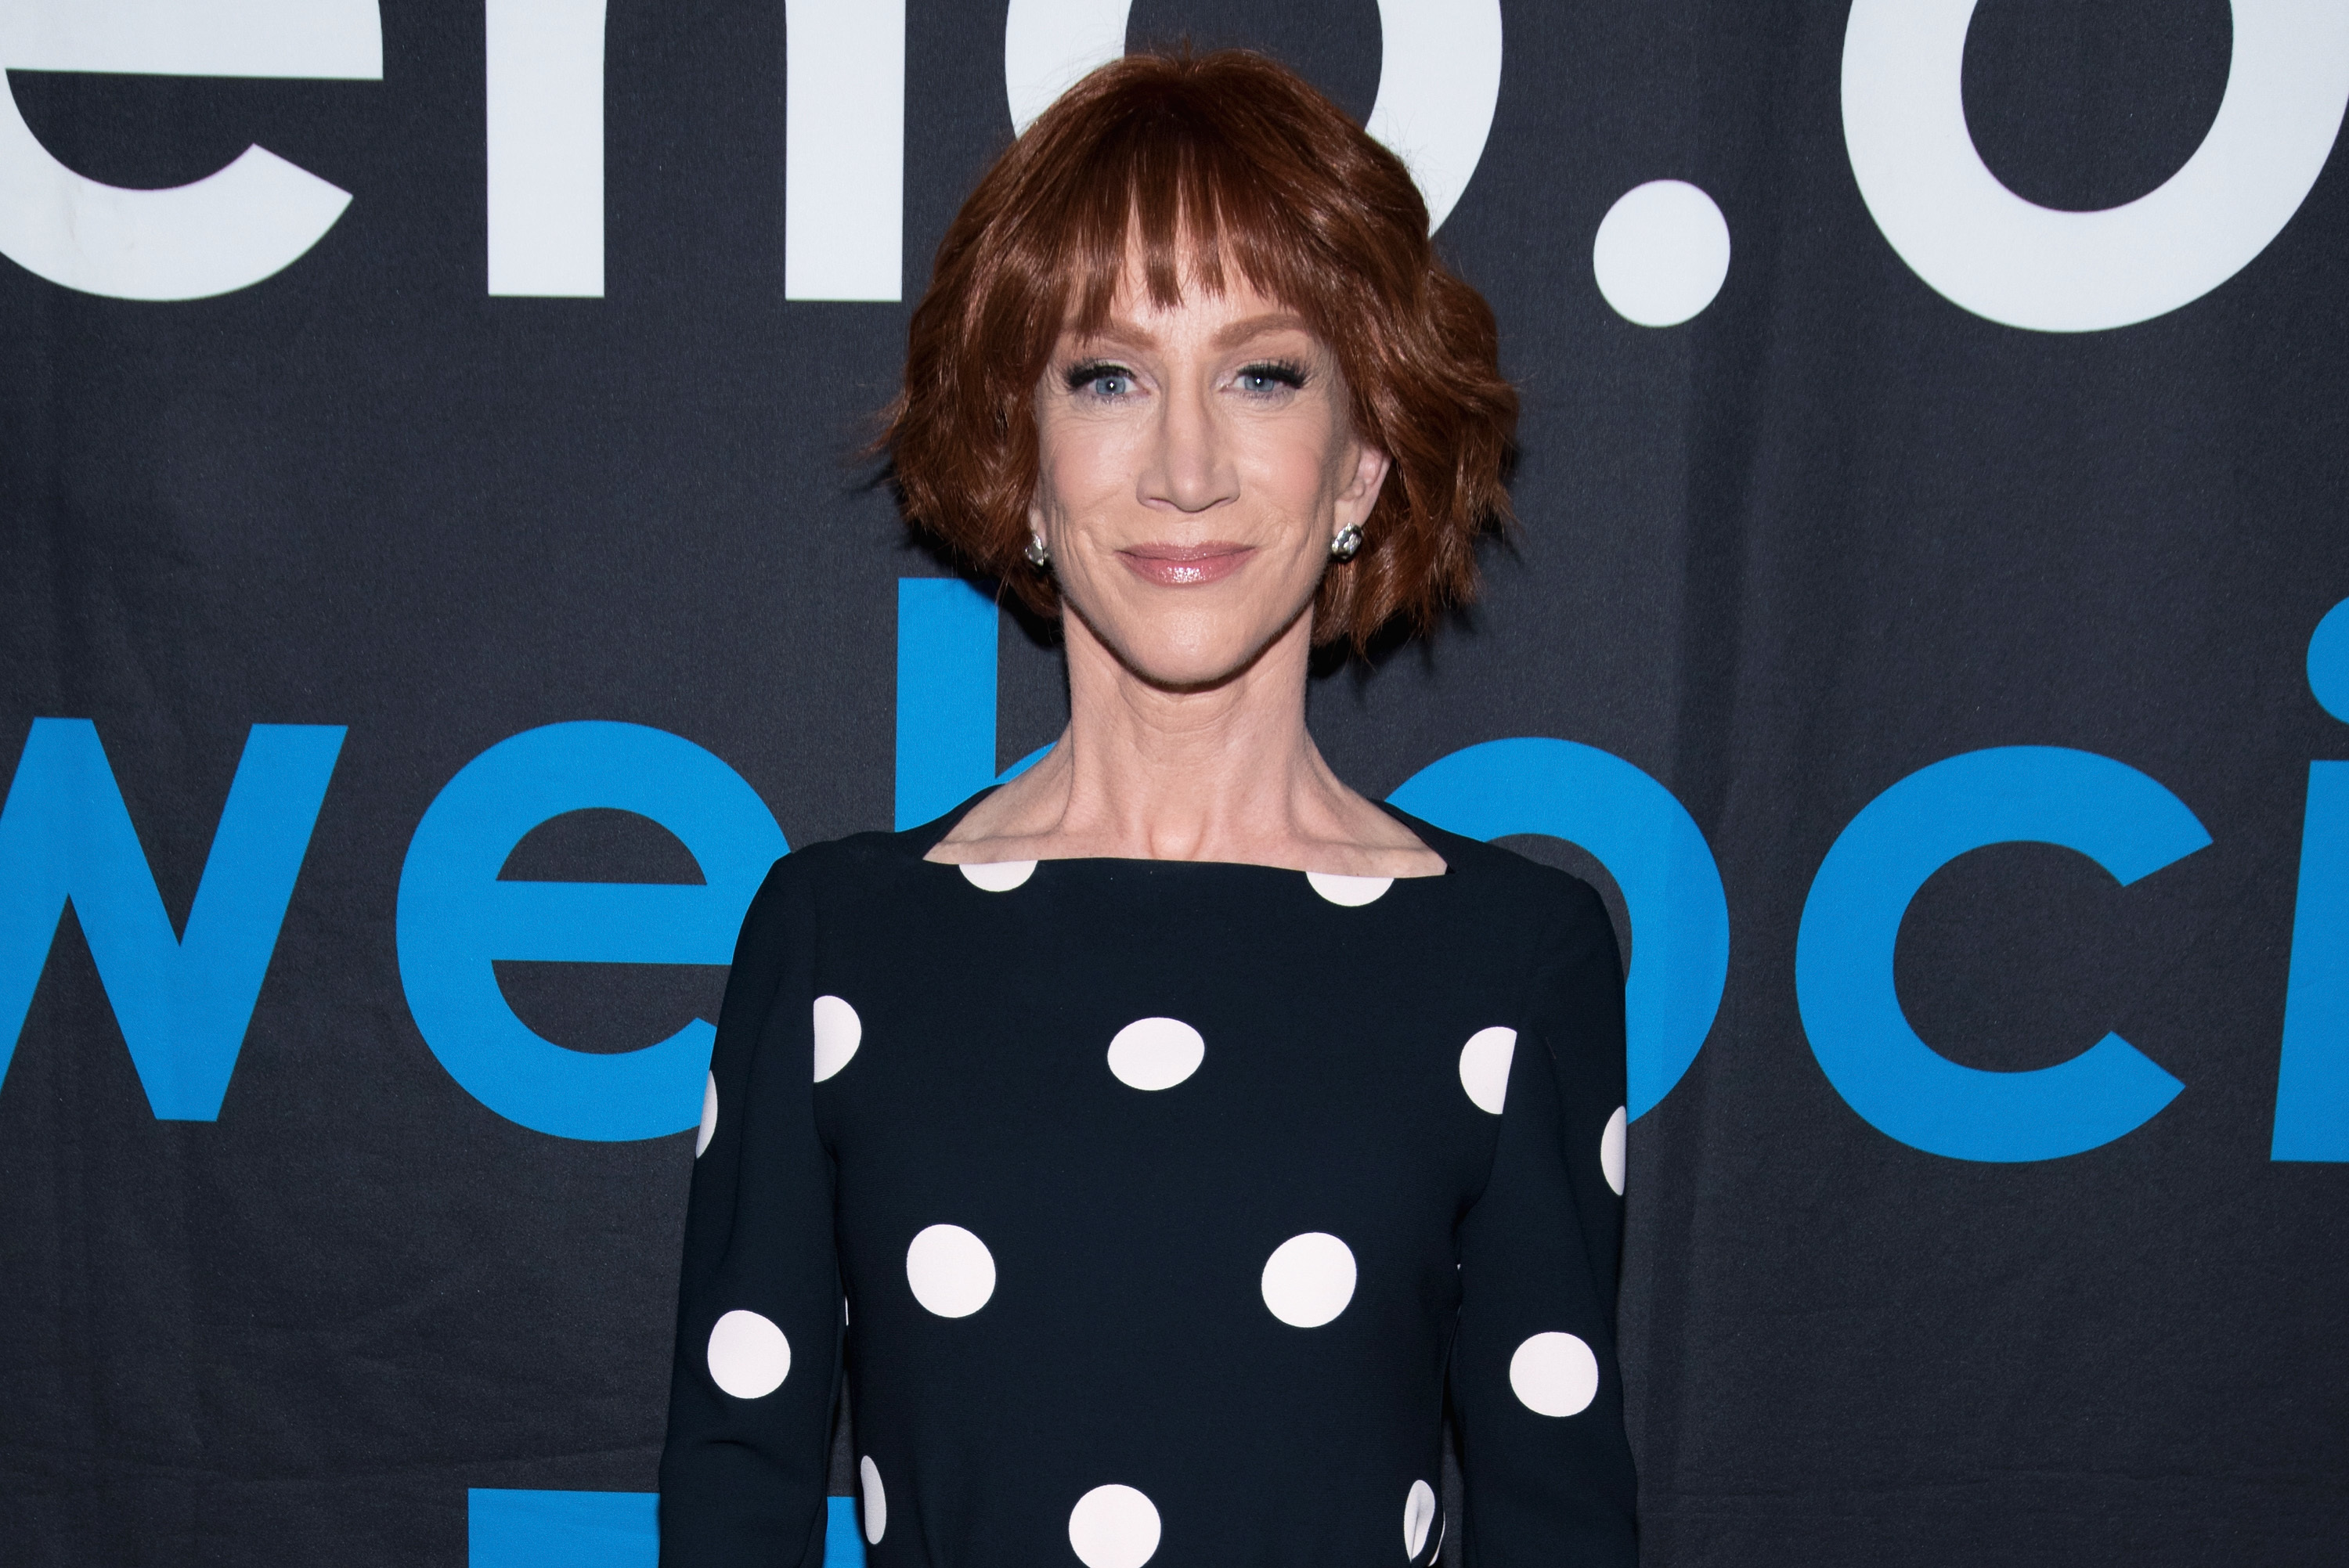 Kathy Griffin is honored during the Rainbow Key Awards at the City of West Hollywood's Council Chambers on June 5, 2018.